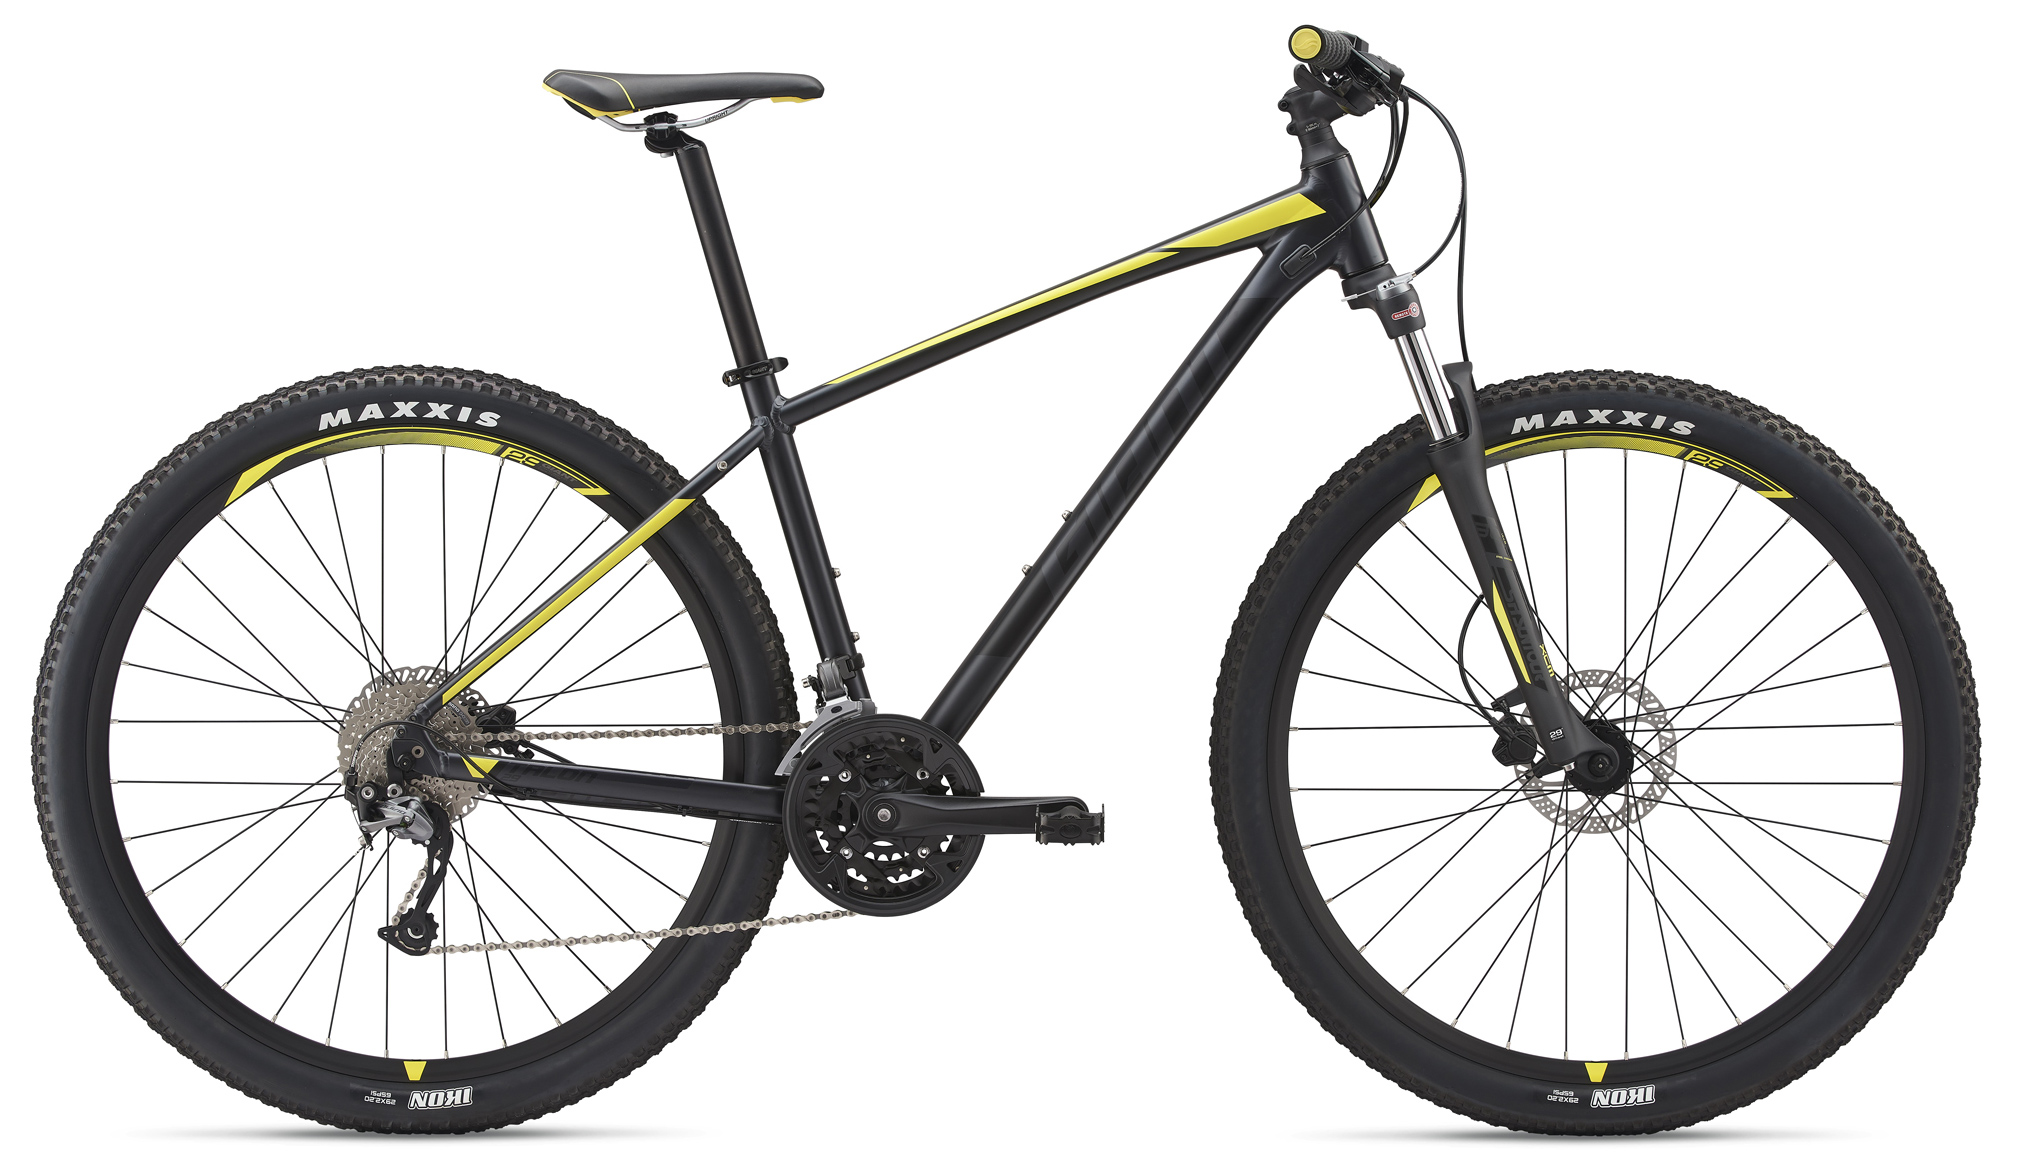 Велосипед Giant Talon 29 3 GE 2019 велосипед giant talon 29er 2 blk 2014